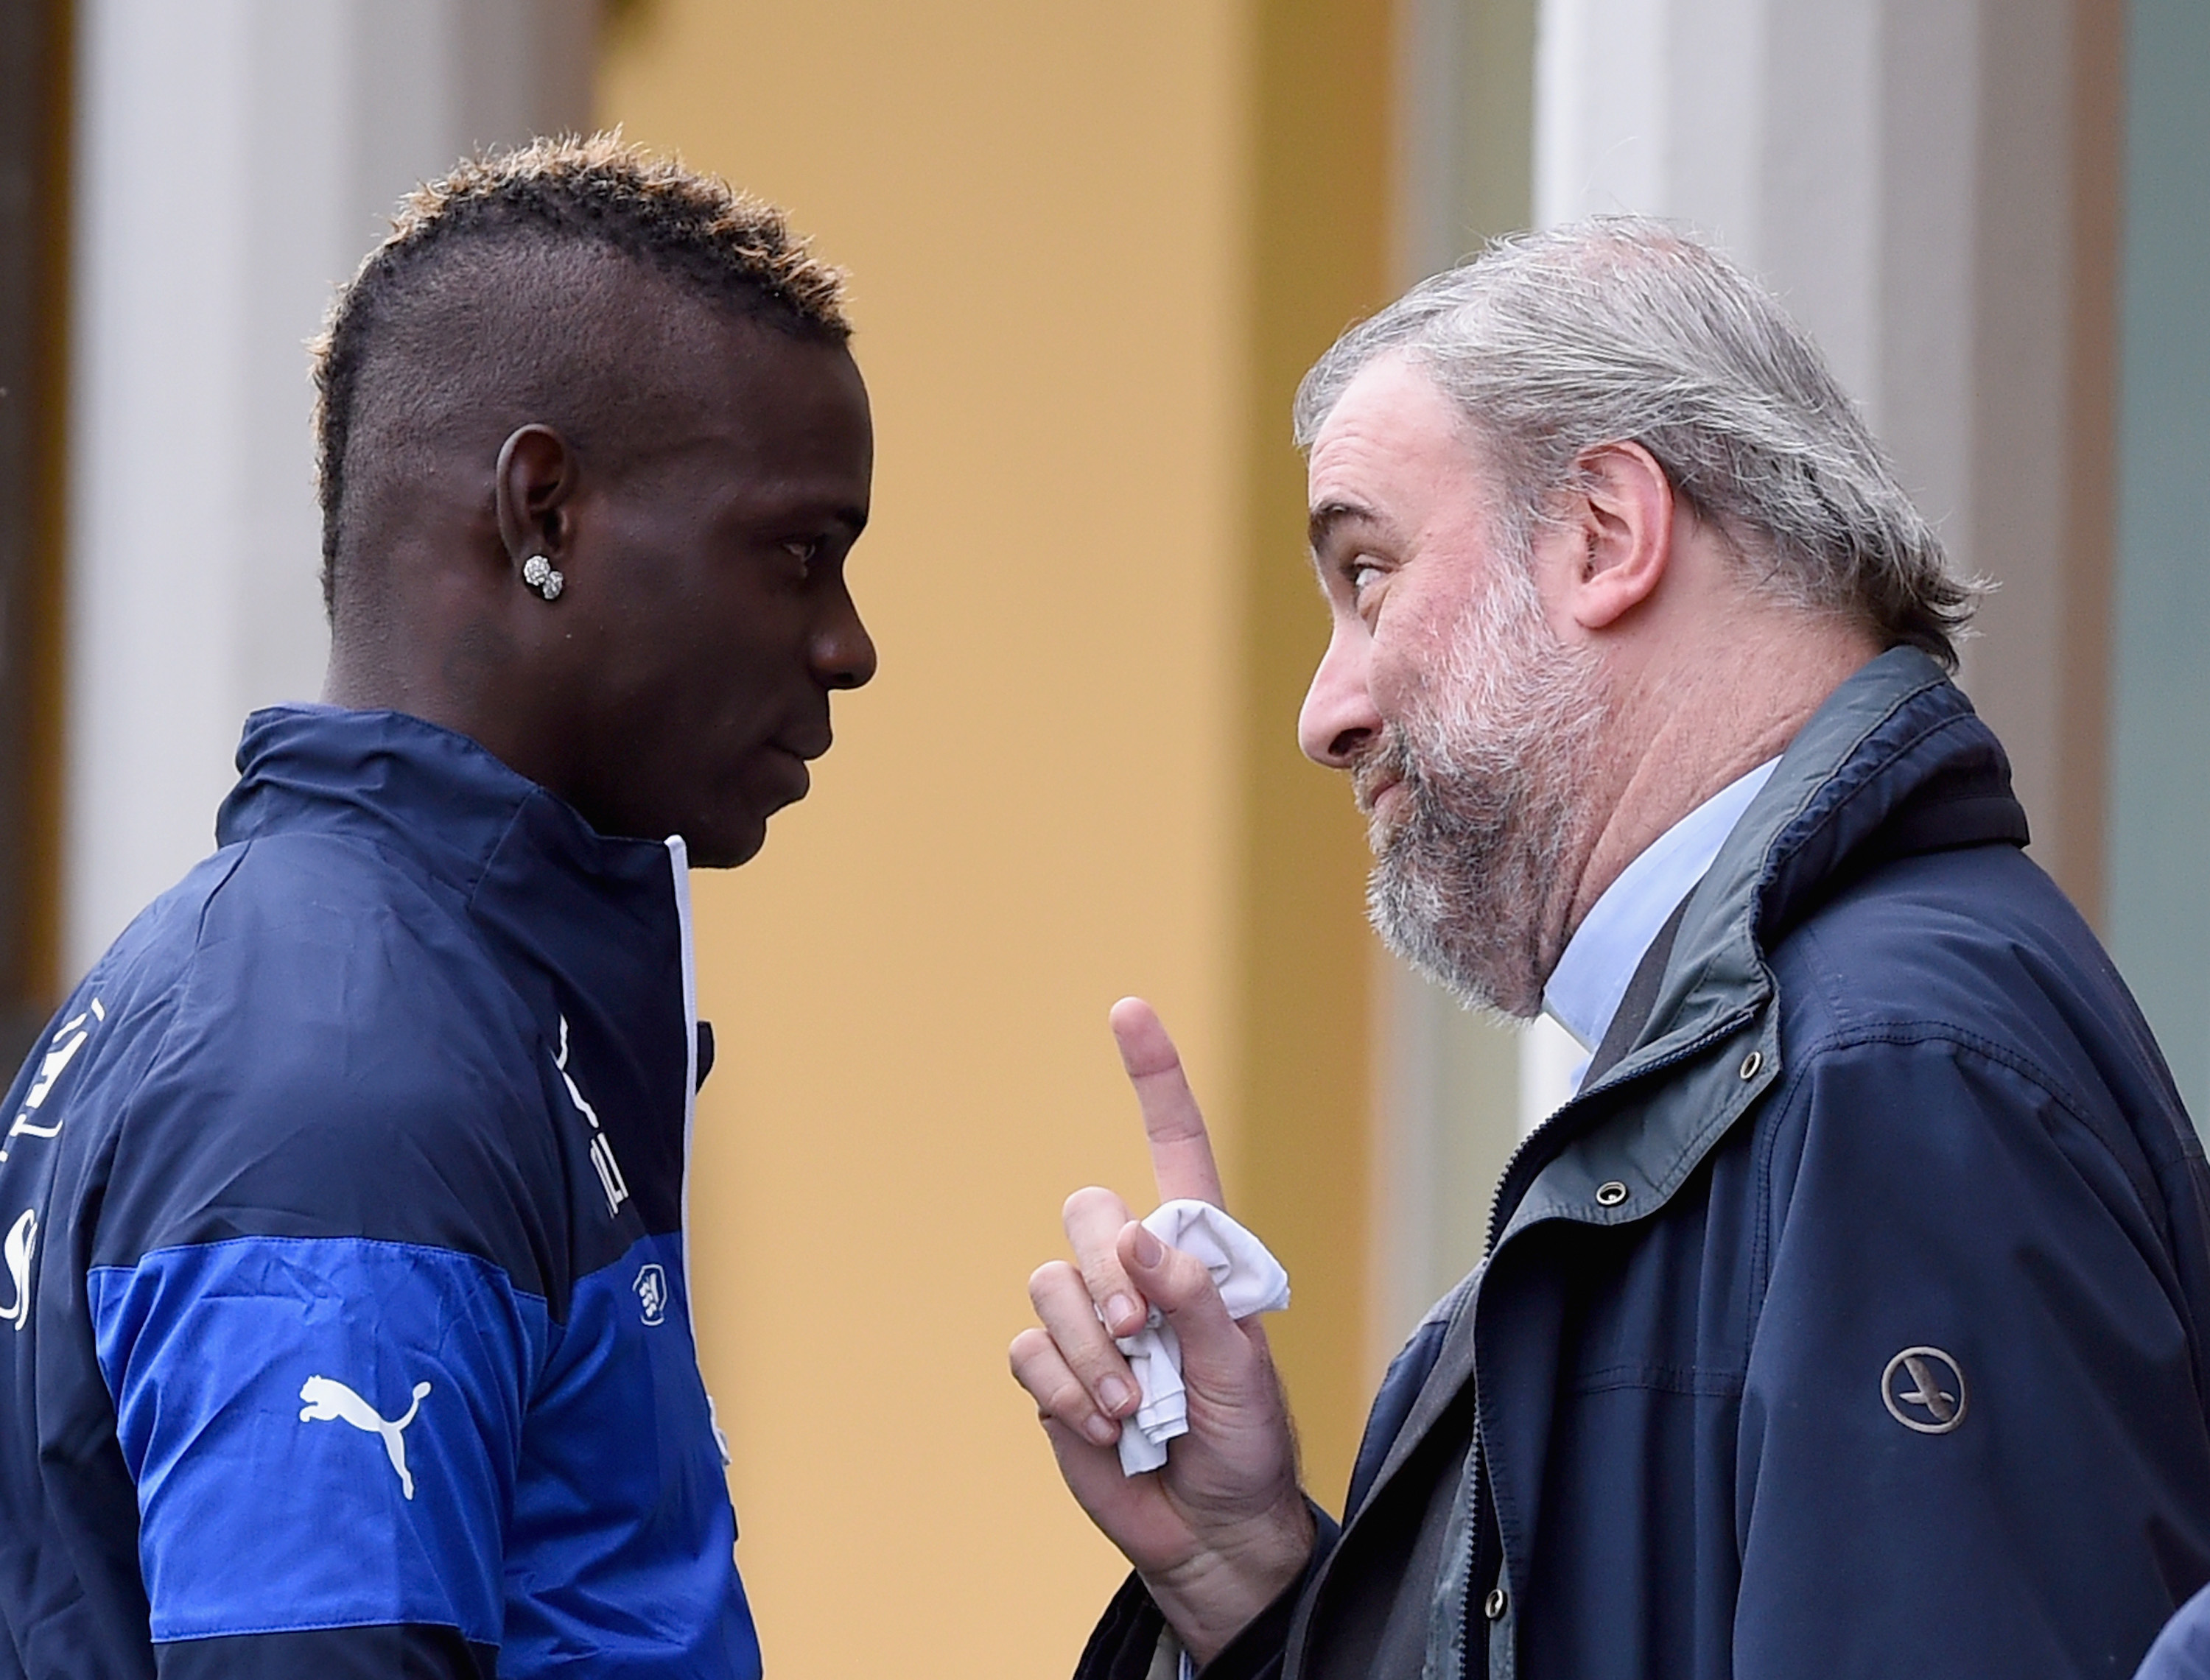 Mario Balotelli's apology was simple, yet remarkable in its rarity